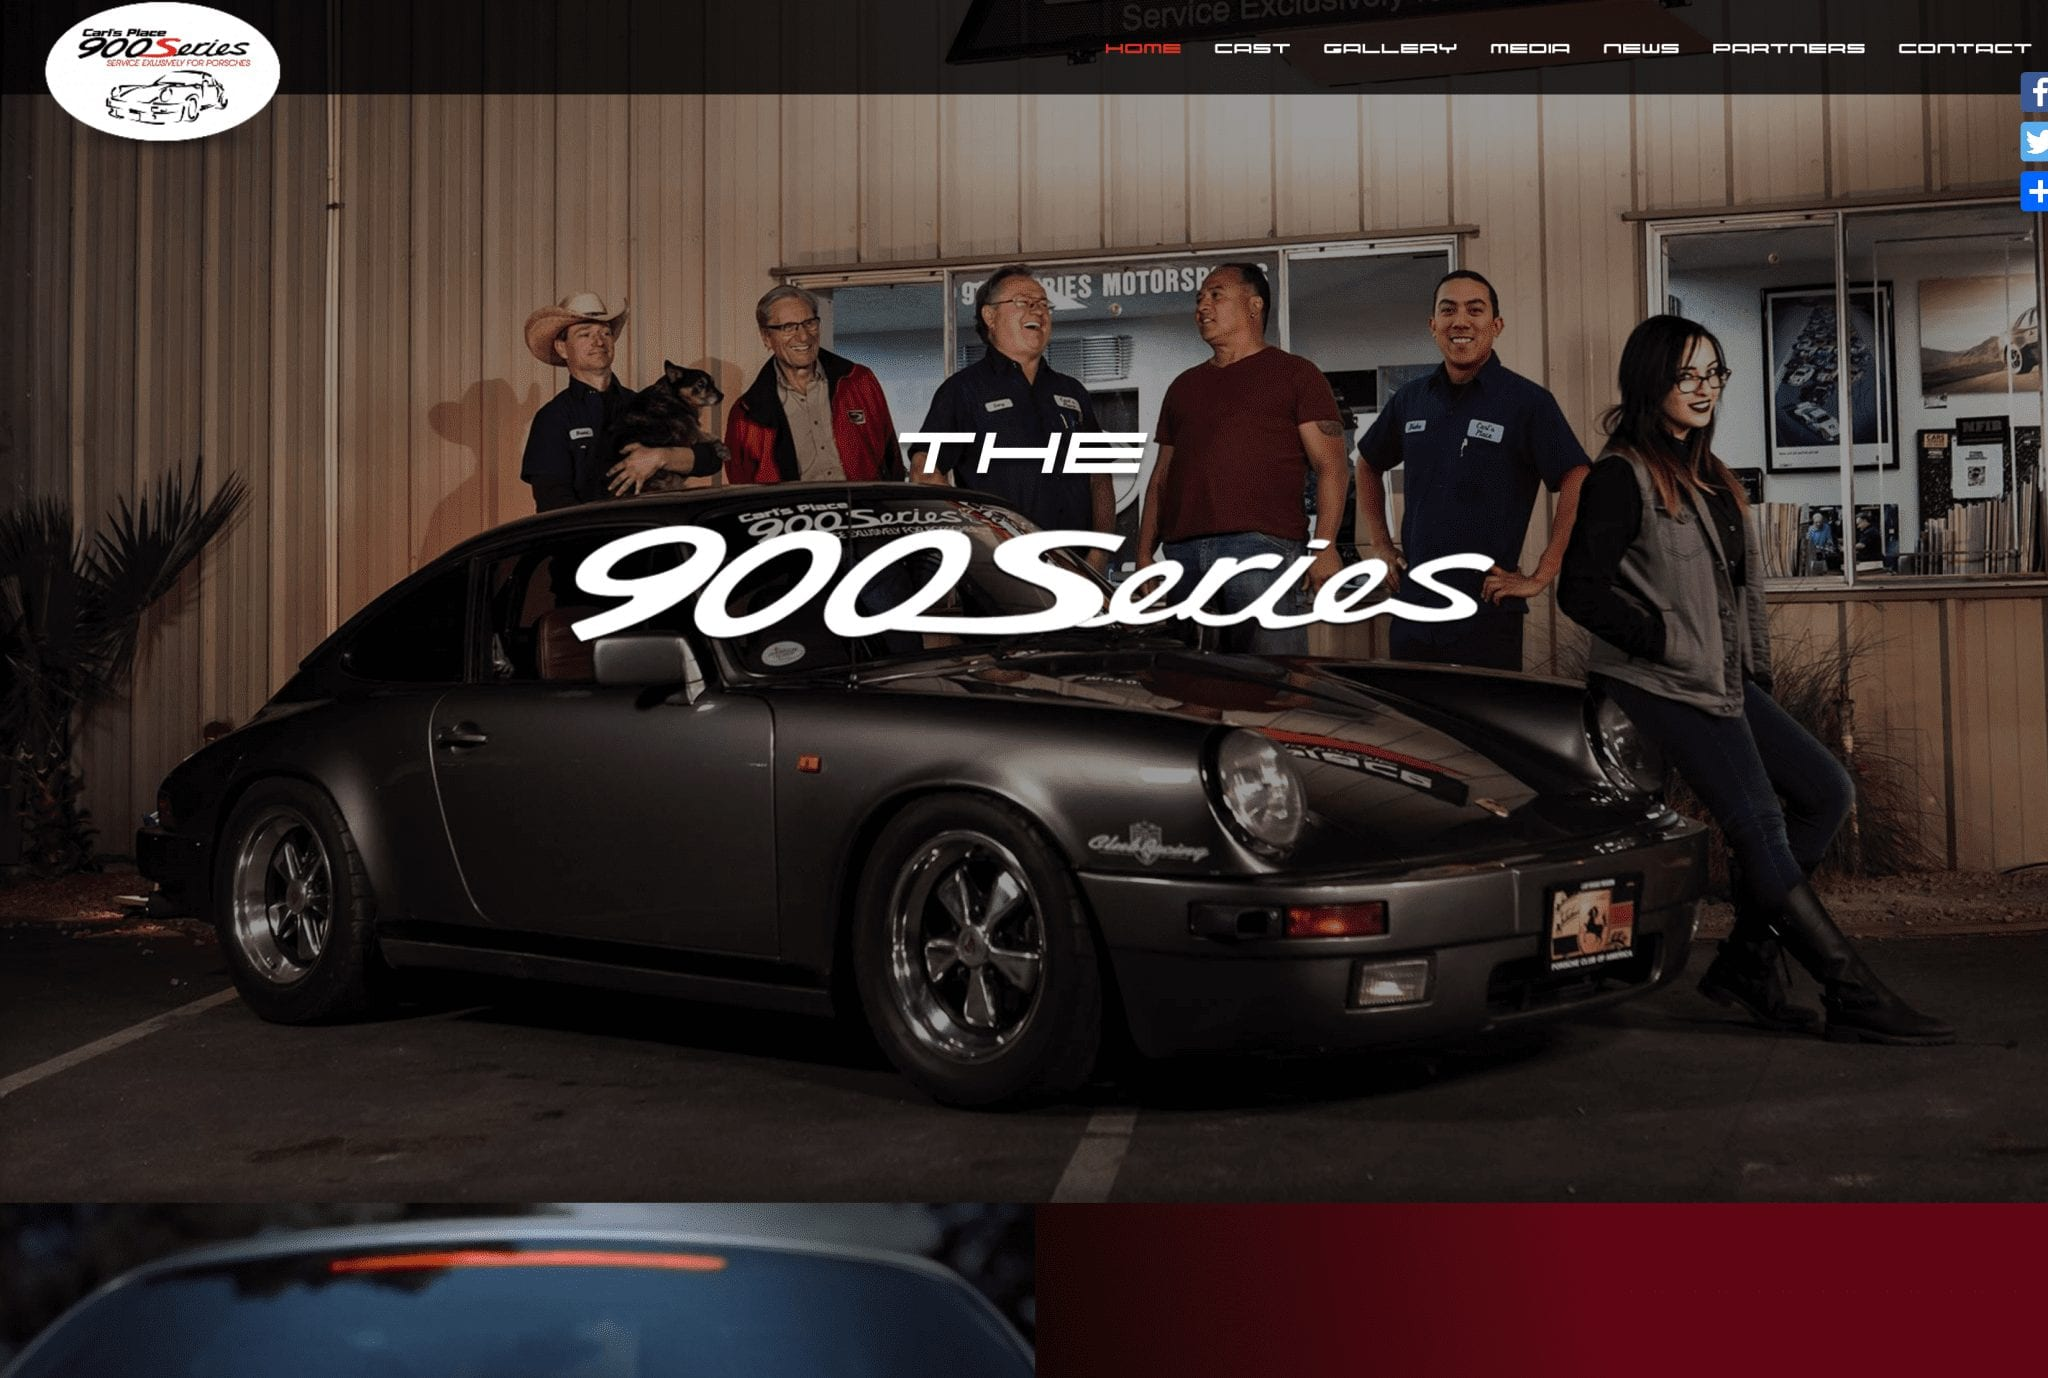 The900Series